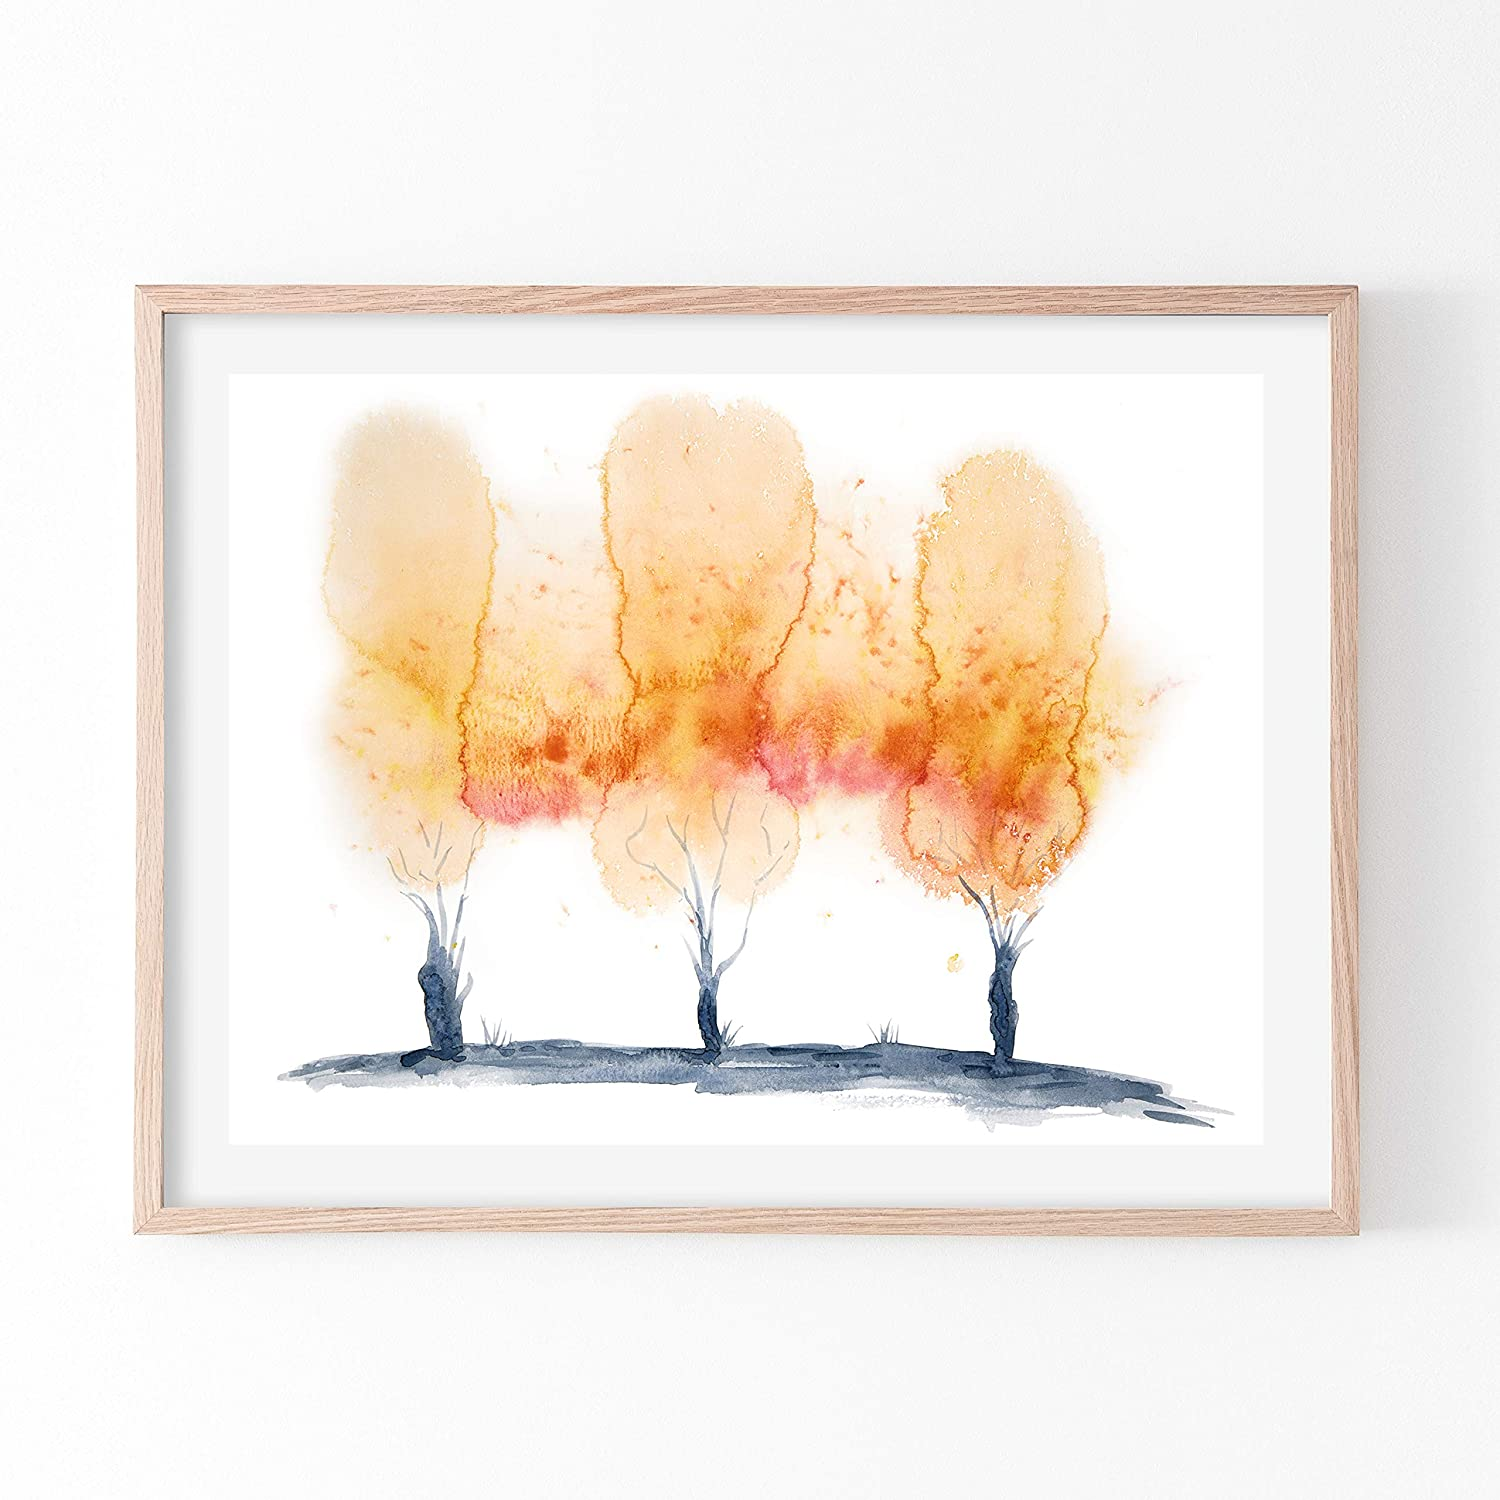 Orange Nature Abstract Art Print, Poster Print Of Navy Artwork, Horizontal Giclee Print Of Tree Painting Print For Frames, Rustic Landscape Art For Living Room, Modern Home Decor Wall Hangings